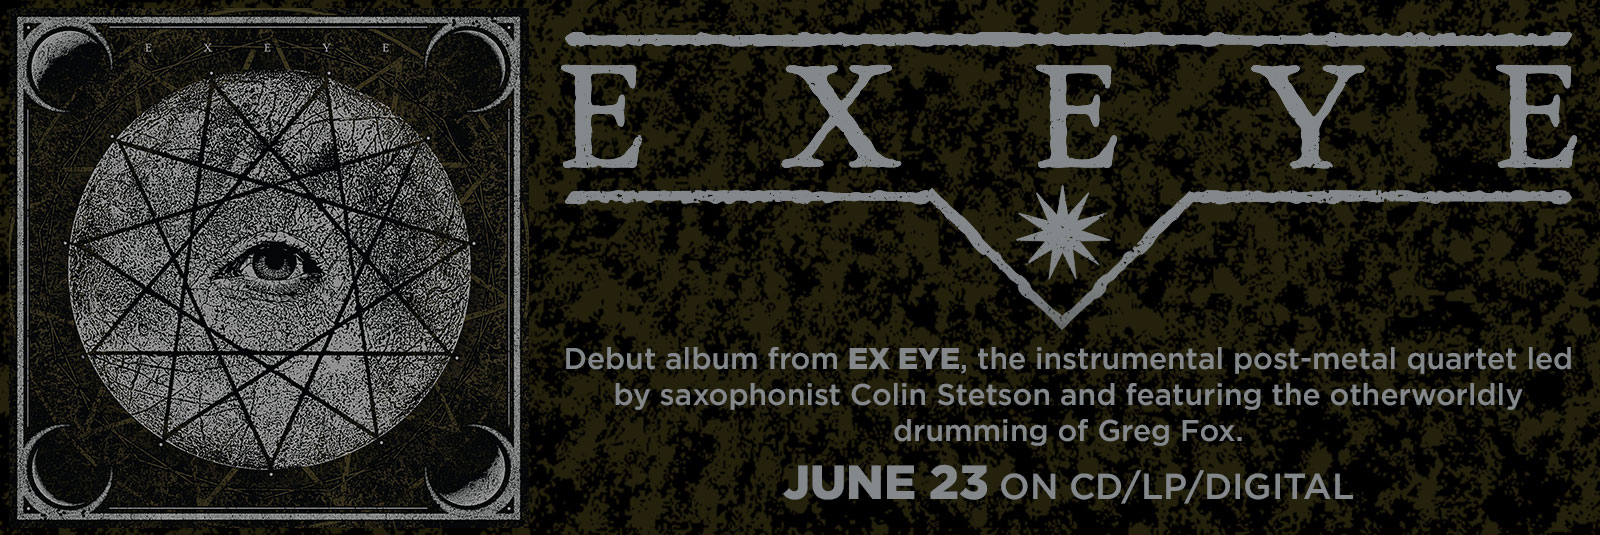 ex eye band, ex eye, relapse, experimental metal, secret chiefs 3